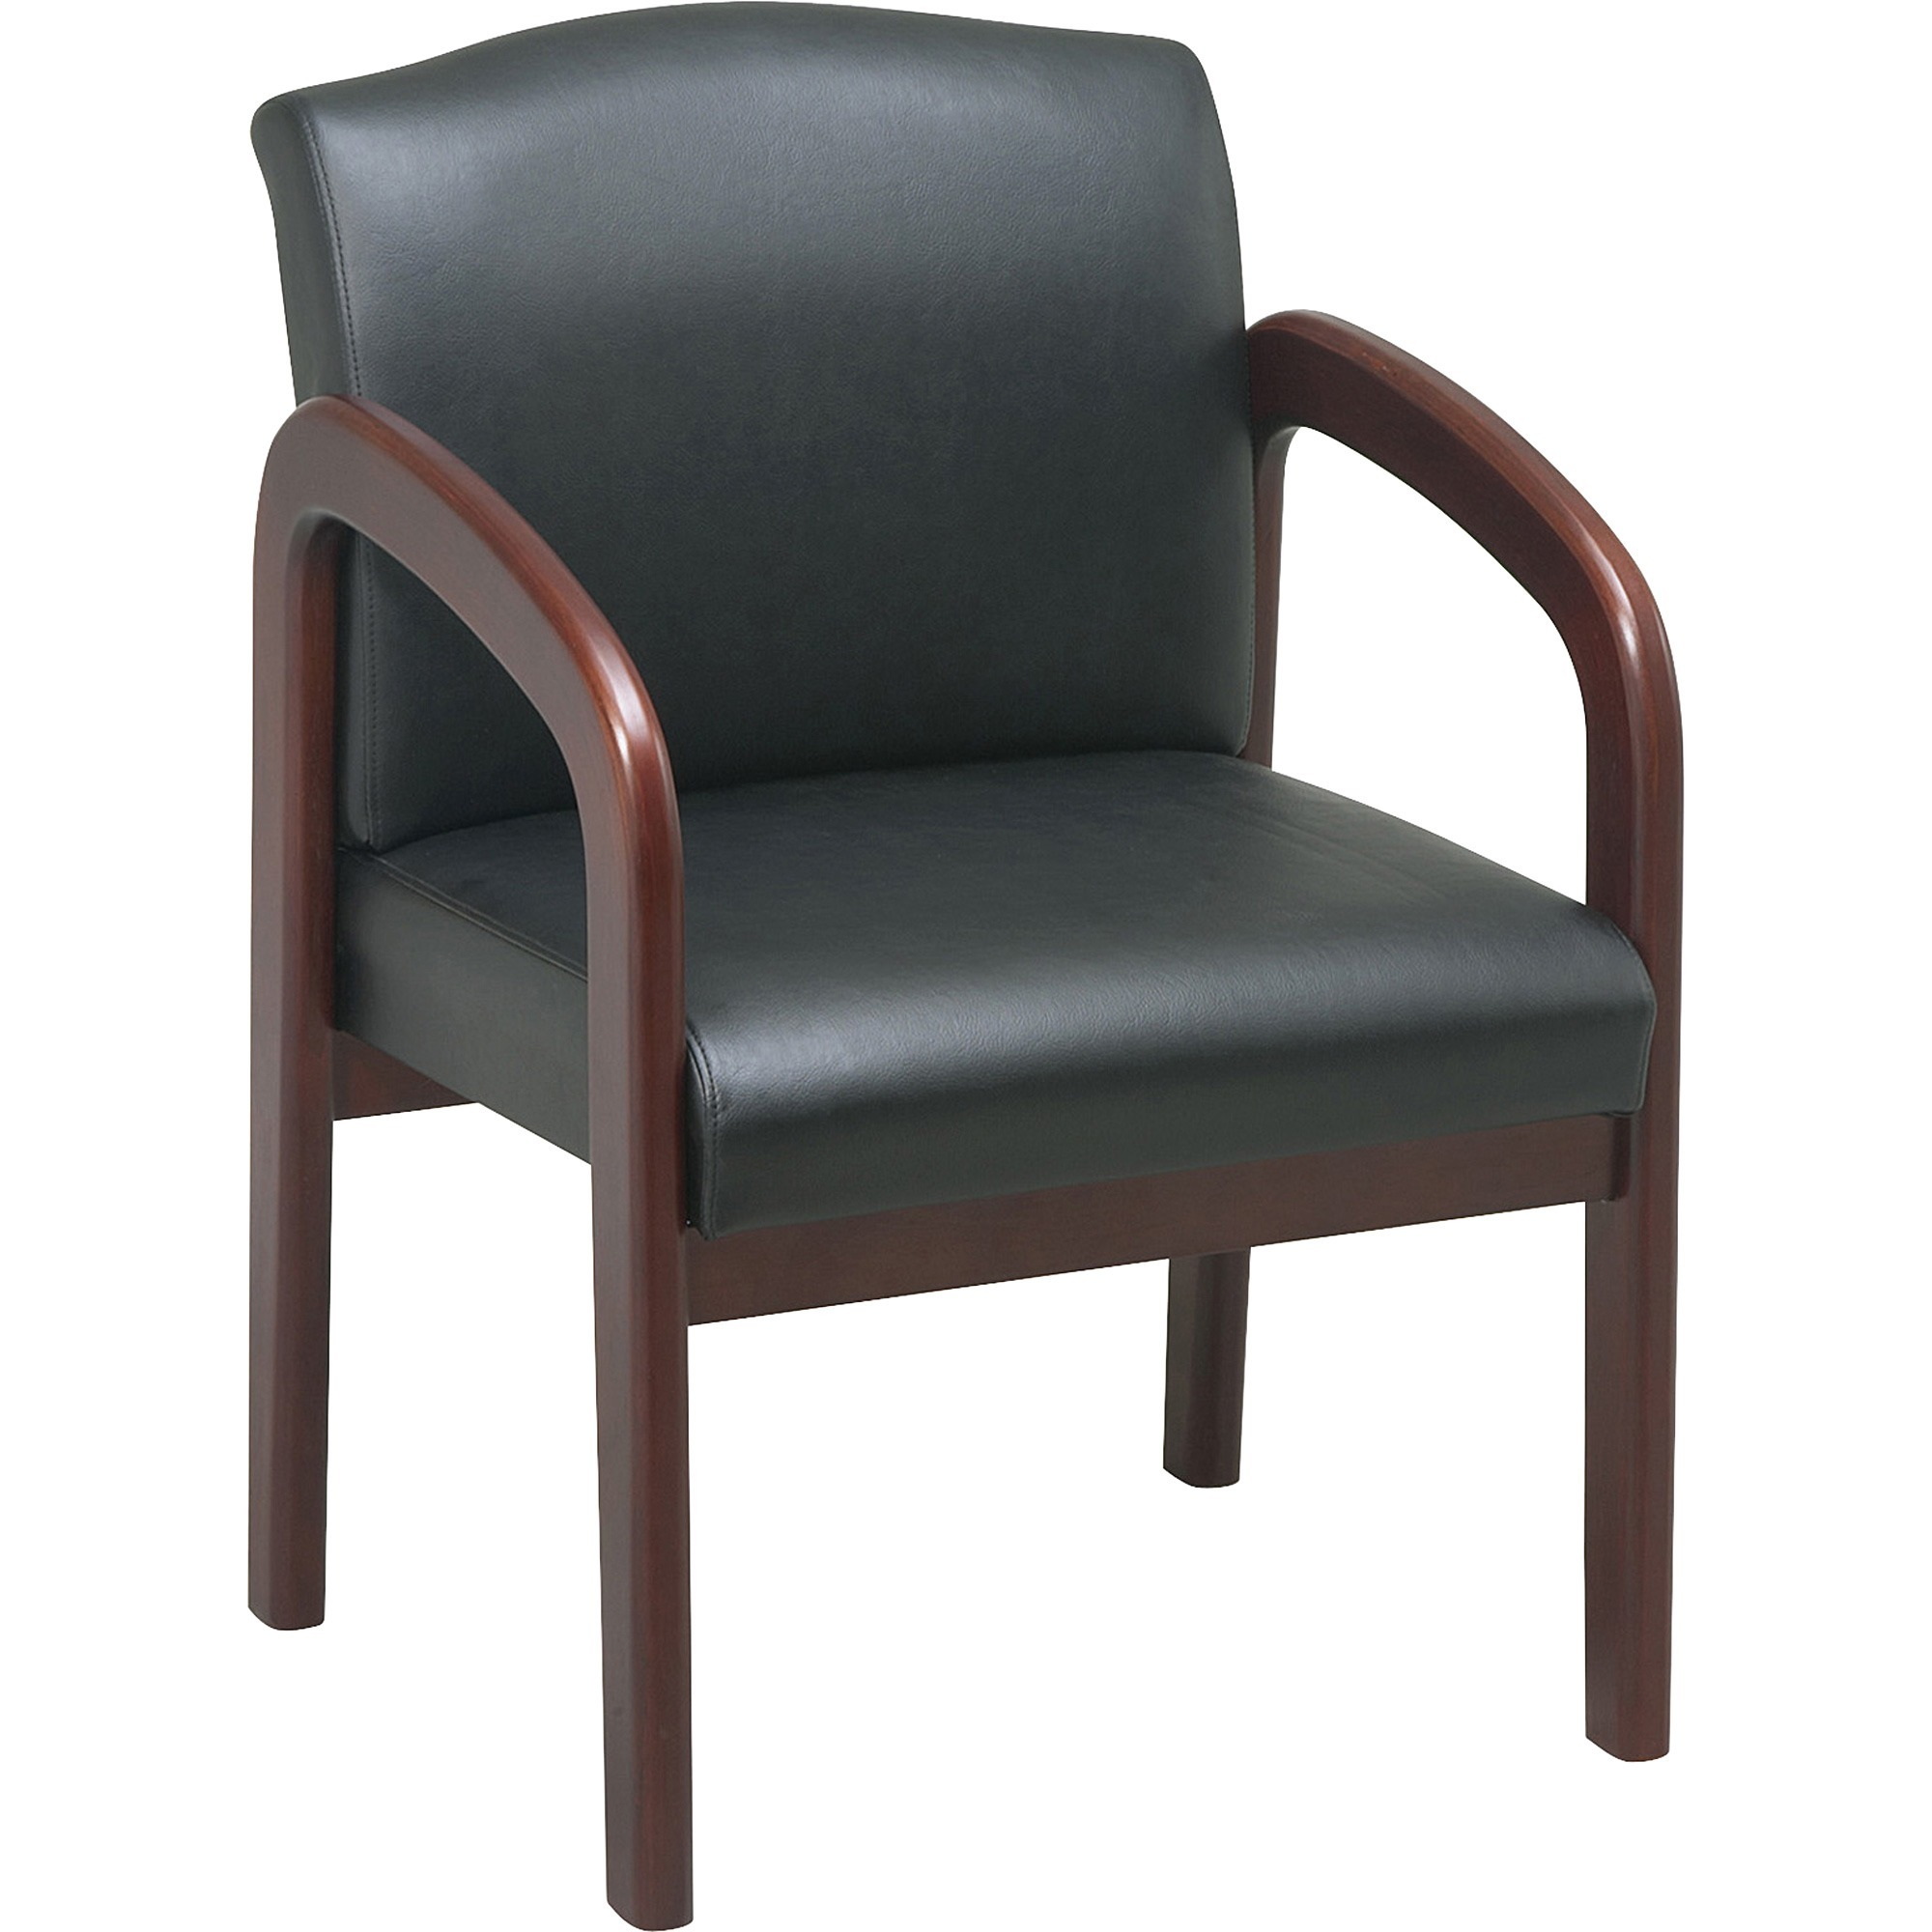 wood chair accessories portable high aldi west coast office supplies furniture chairs